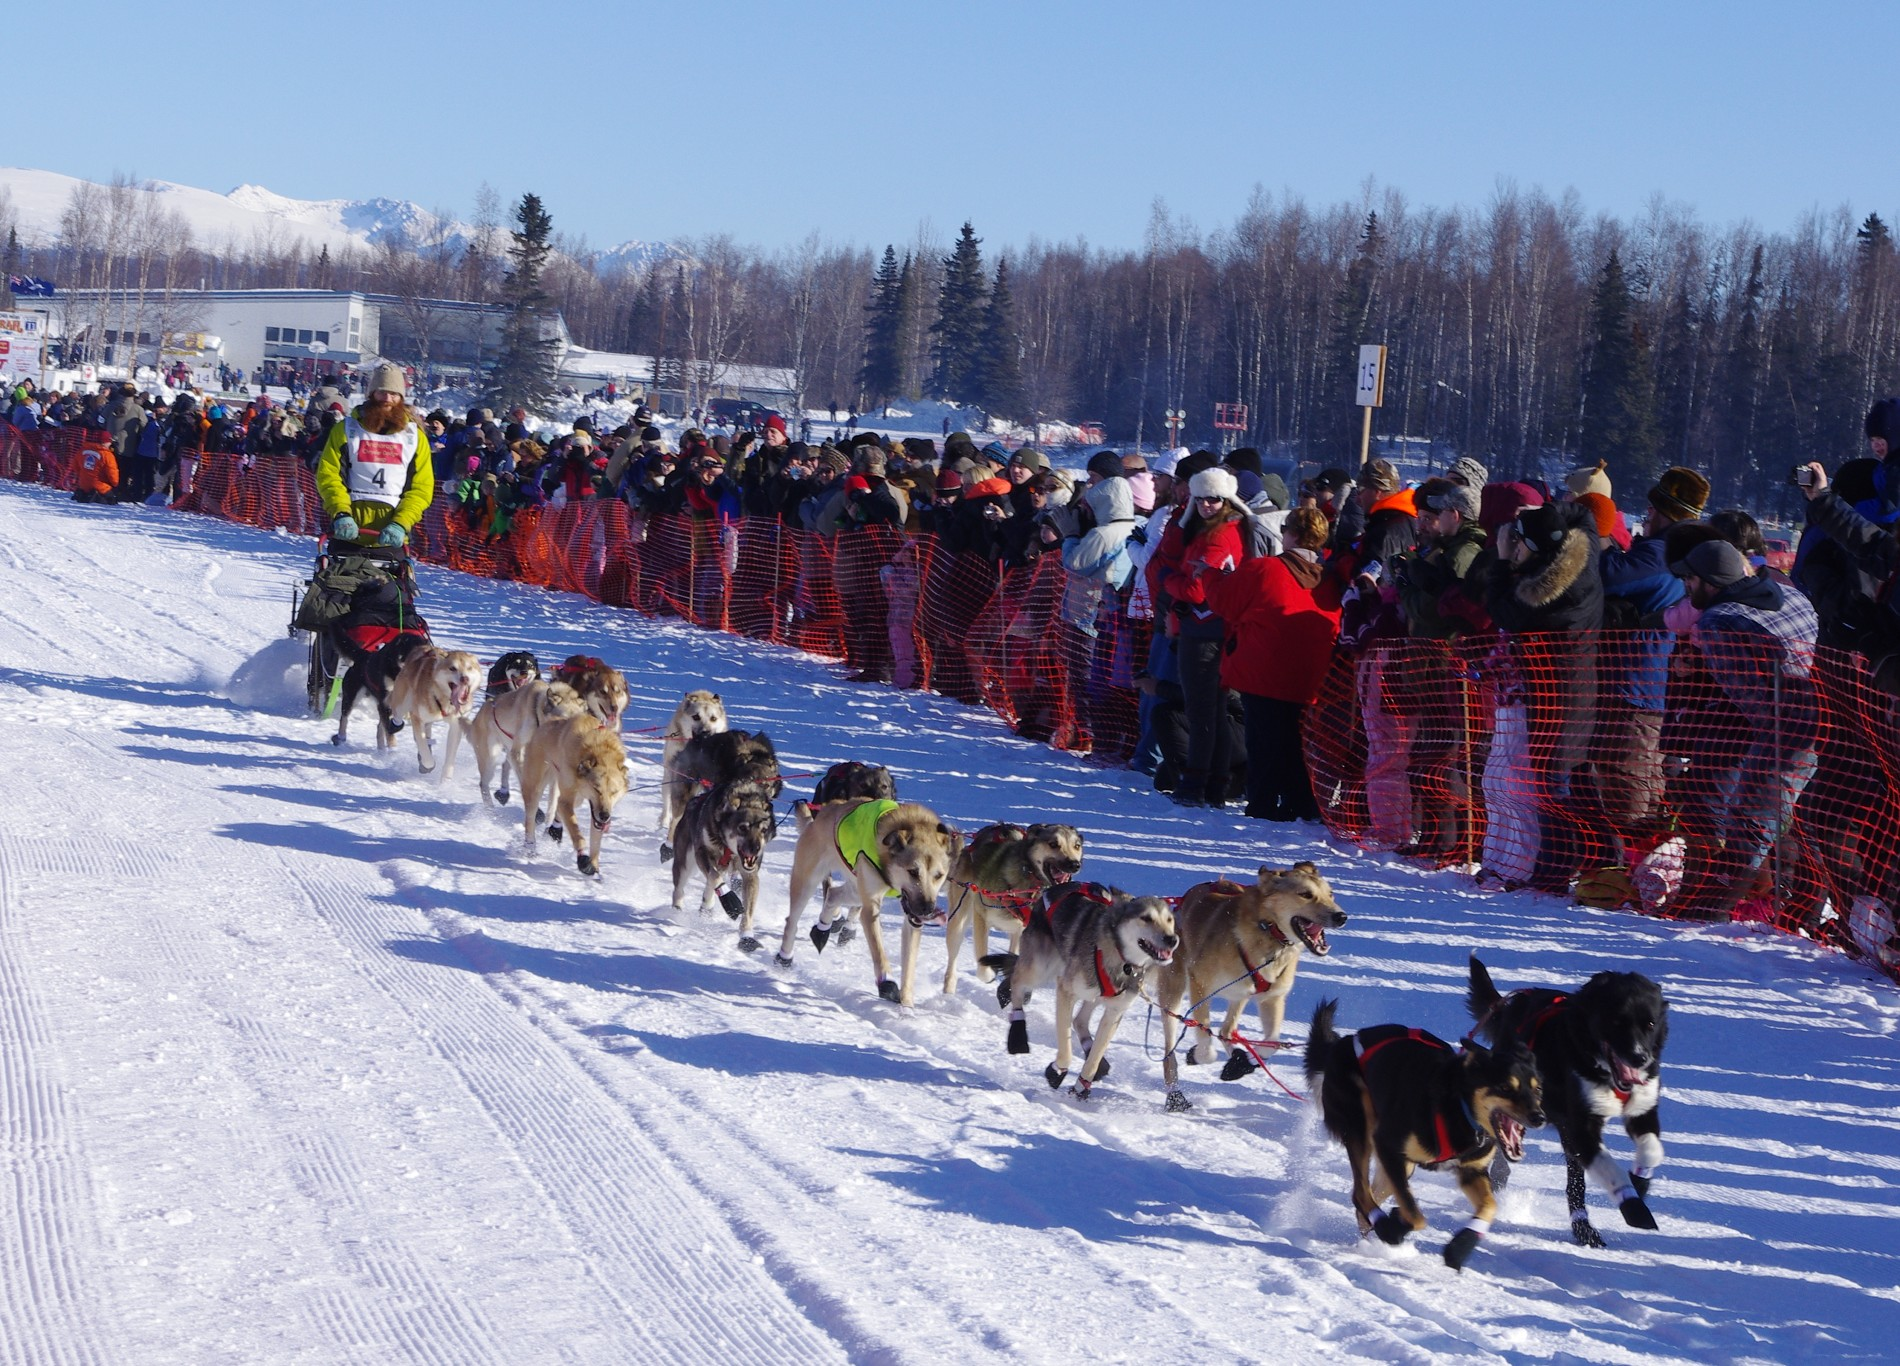 2011 Iditarod Race - Team 4 sled dogs and musher.